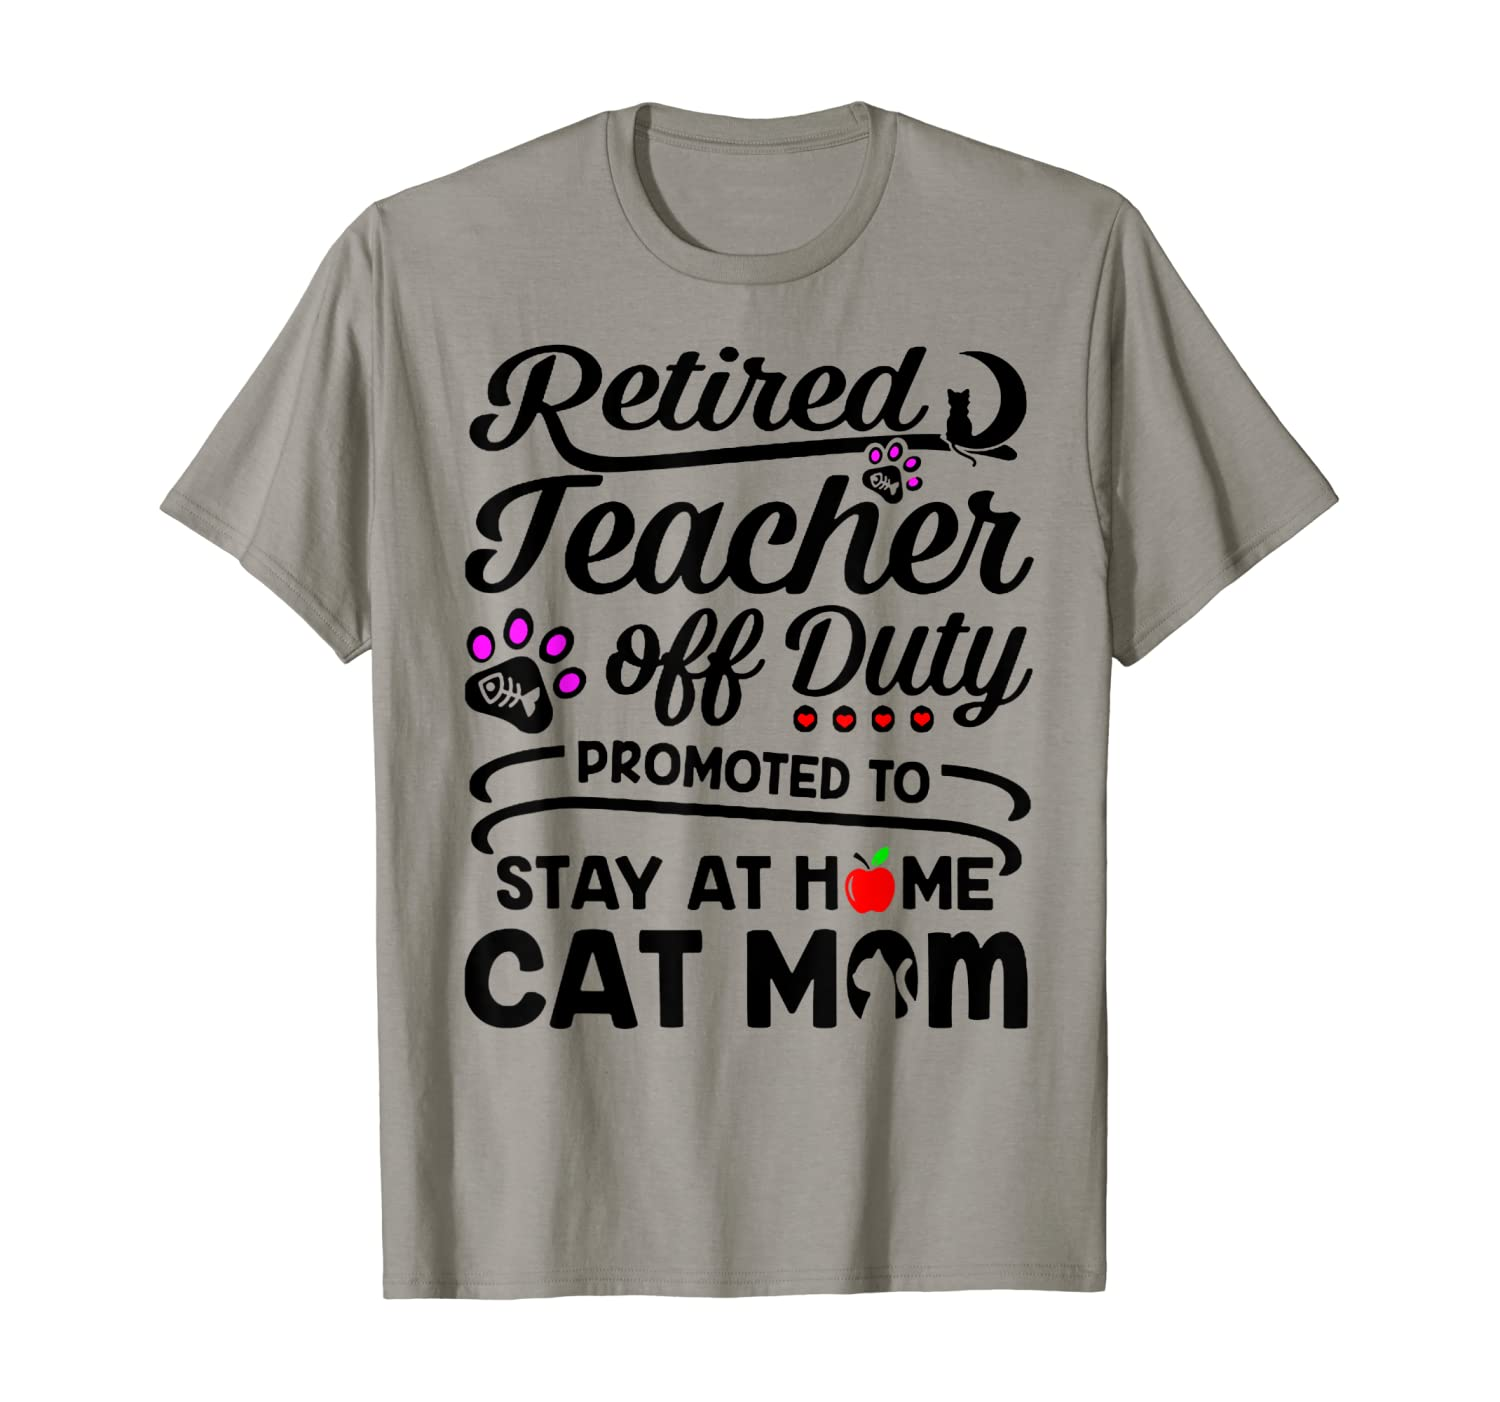 Retired Teacher Off Duty Promoted To Stay At Home Cat Mom T-Shirt